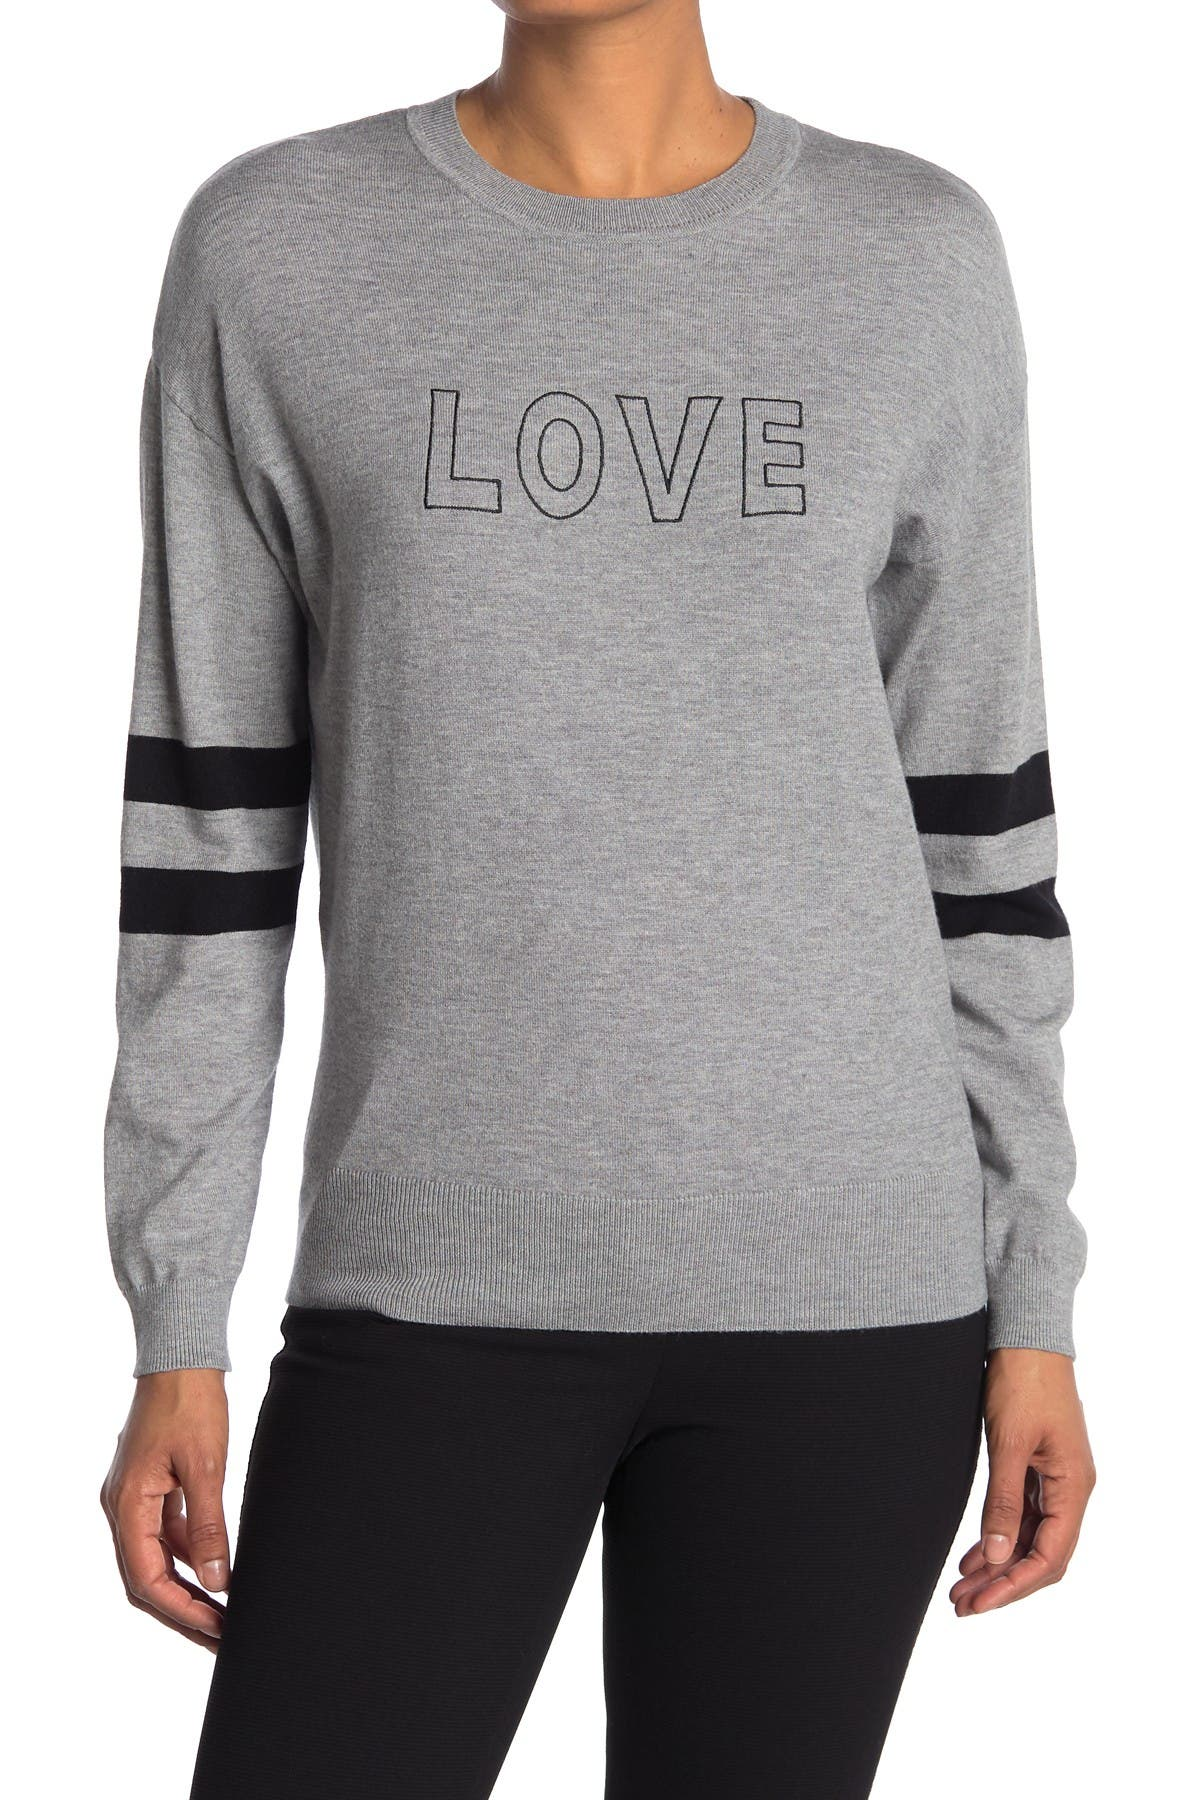 Image of Philosophy Apparel Love Striped Sleeve Crew Neck Sweater